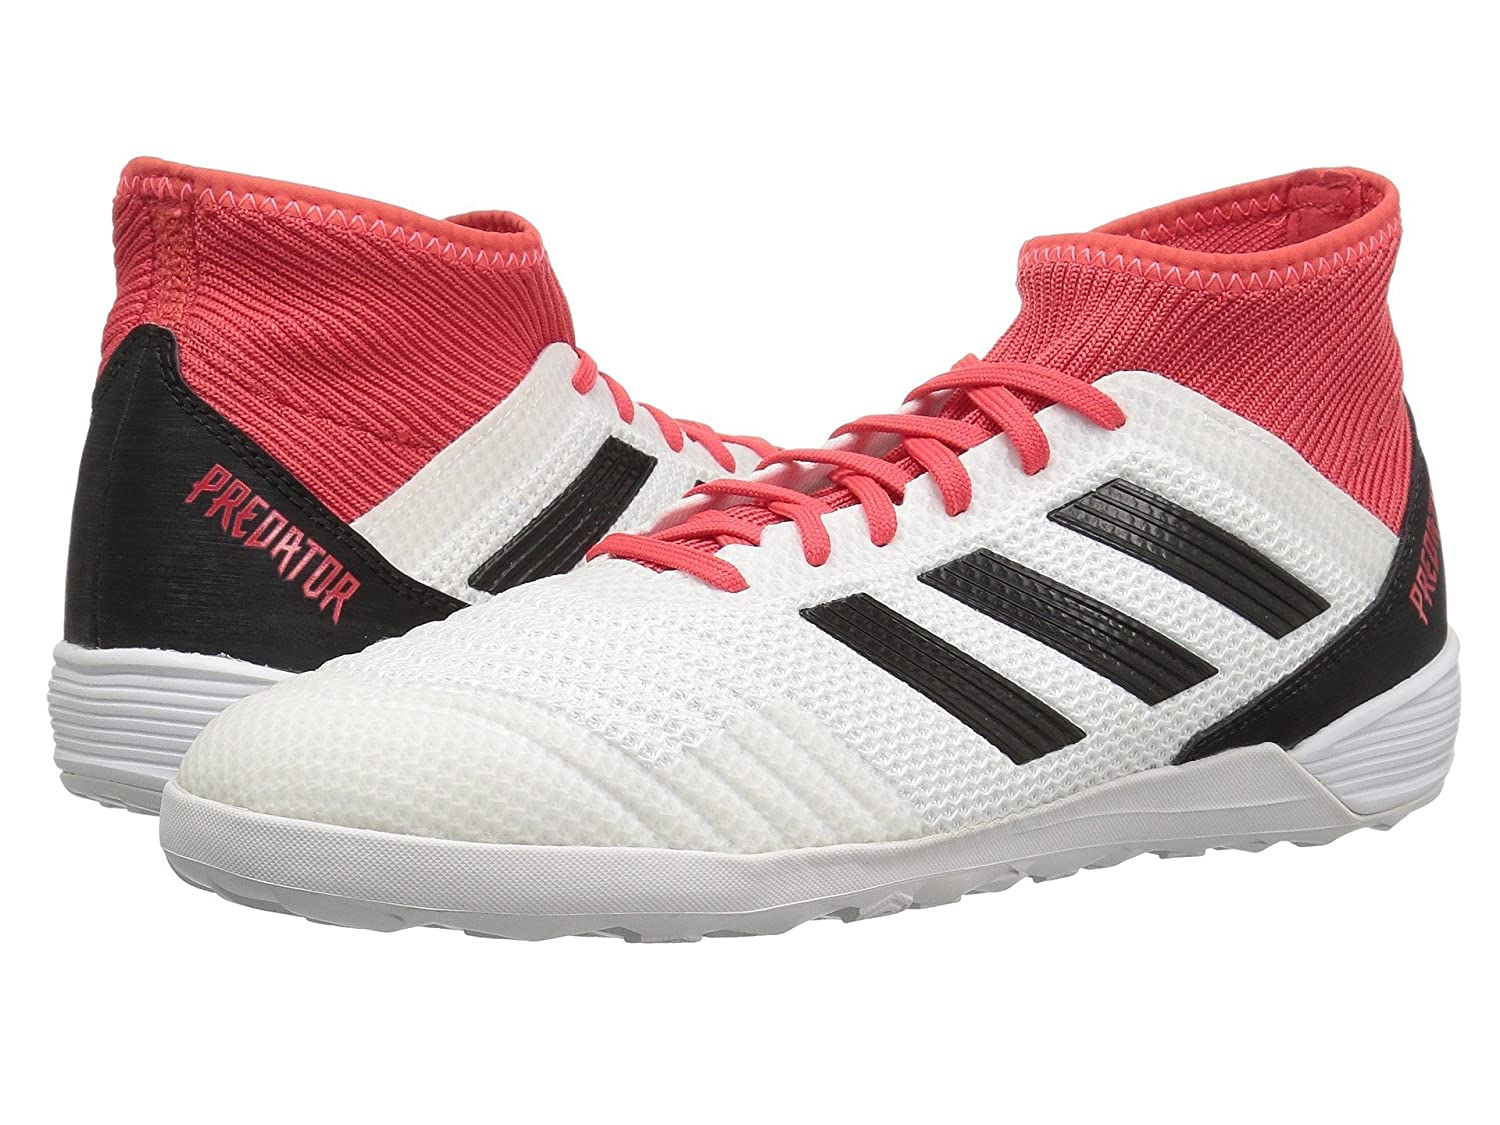 (アディダス) adidas メンズサッカーシューズ靴 Predator Tango 18.3 Indoor White/Black/Real Coral 6.5 (24.5cm) D Medium B07BQHRG34